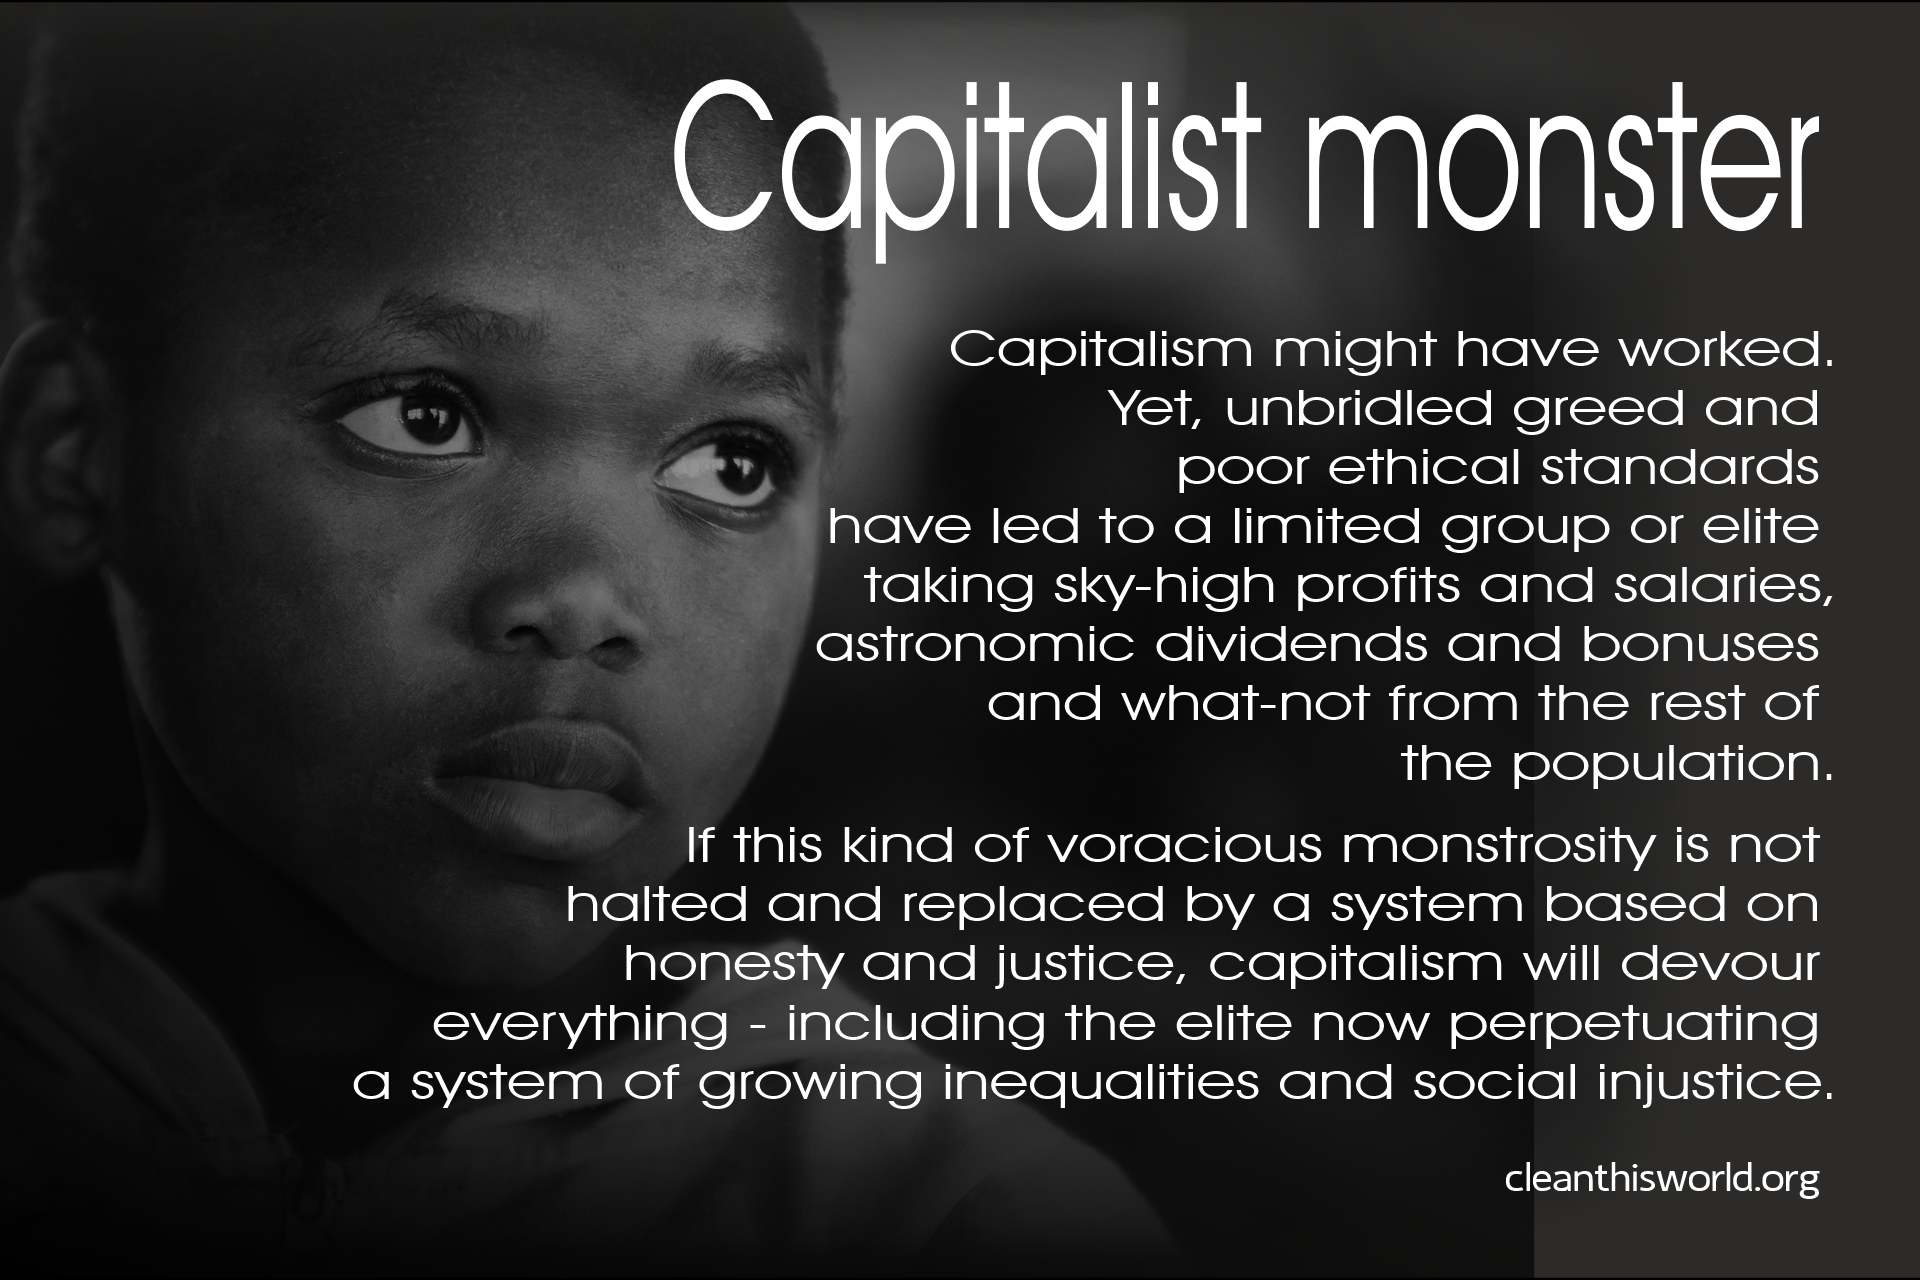 Capitalist monster